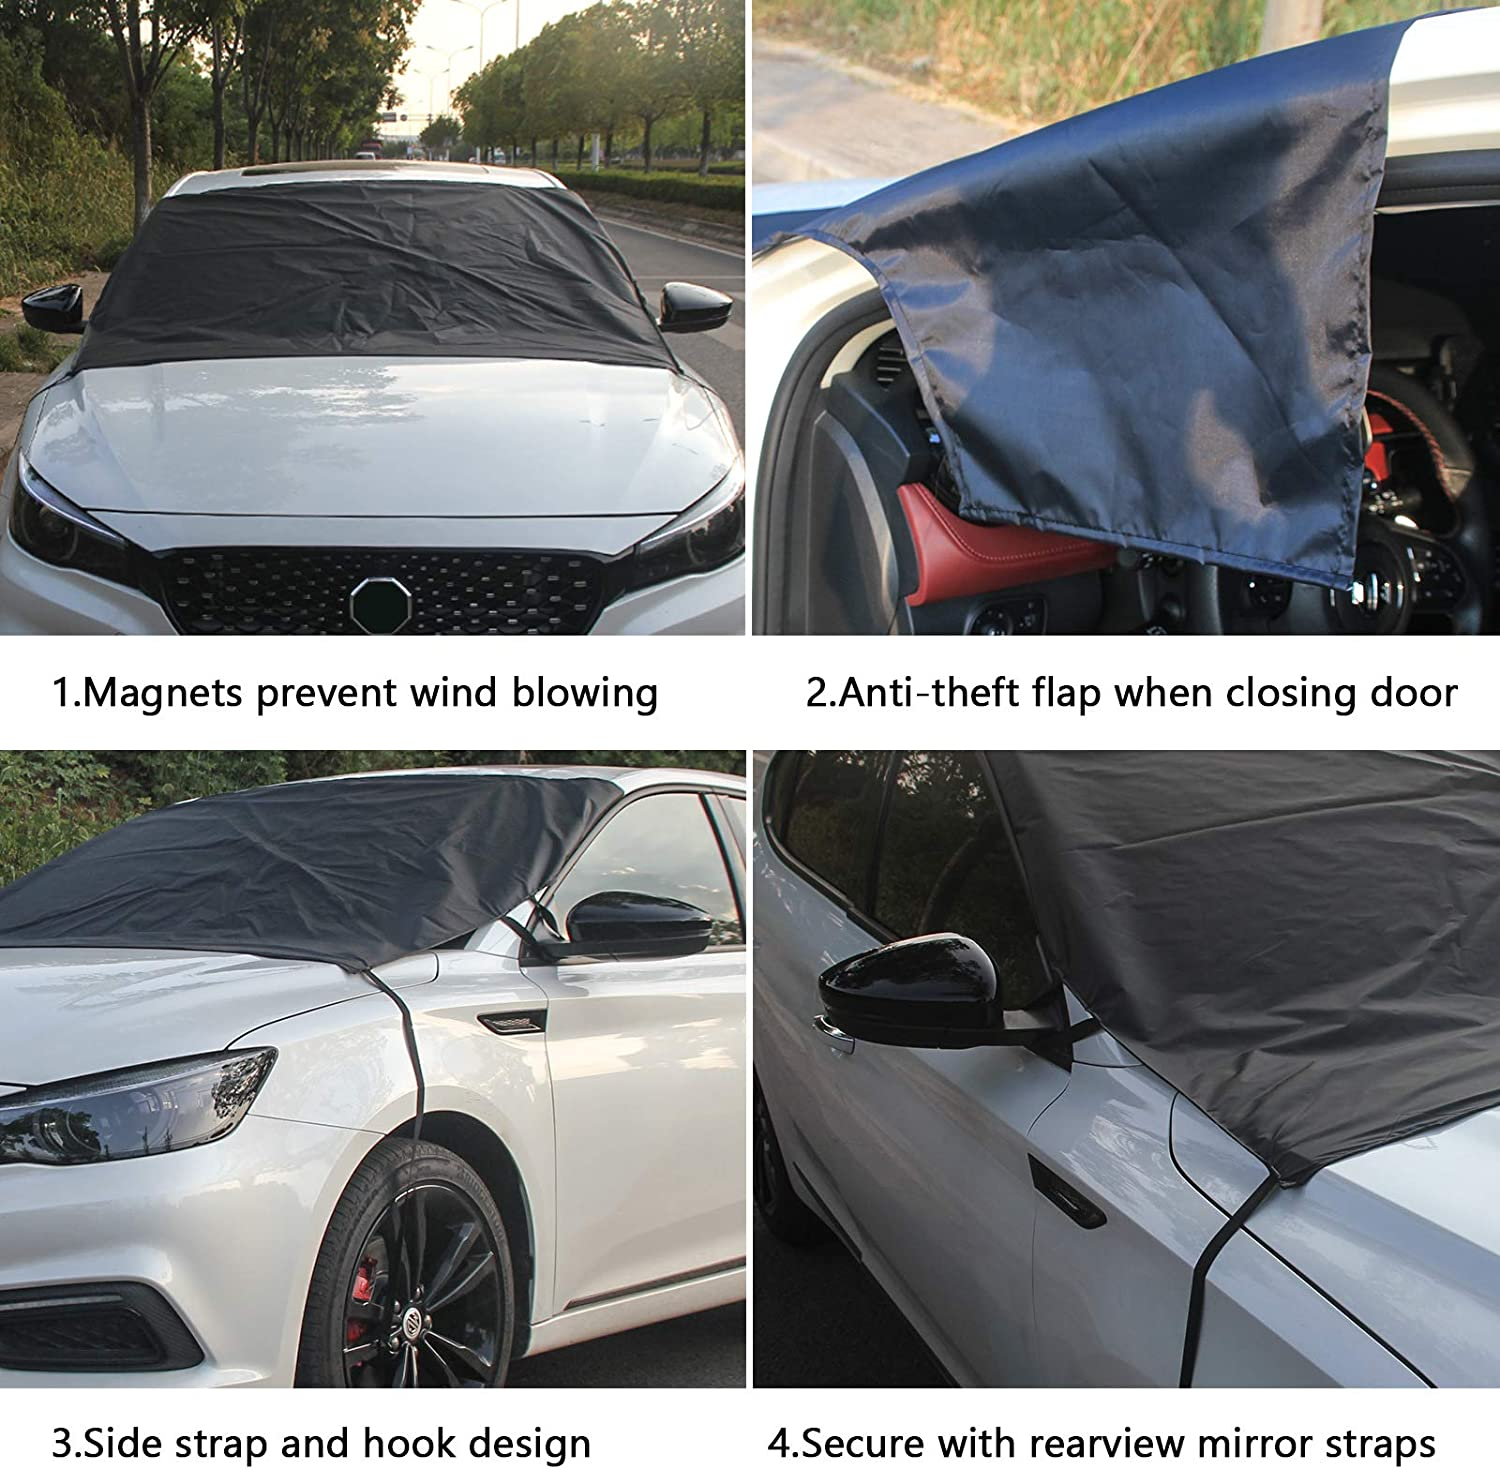 Straps Fixed Design. 2020 Newest Winter Extra Large Fits Most Car Truck SUV Van Windshield Snow Cover and Sunshade.4-Layer fabric。75x63x0.1 600D oxford cloth Frozen//Ice//Water//Snow Resistance